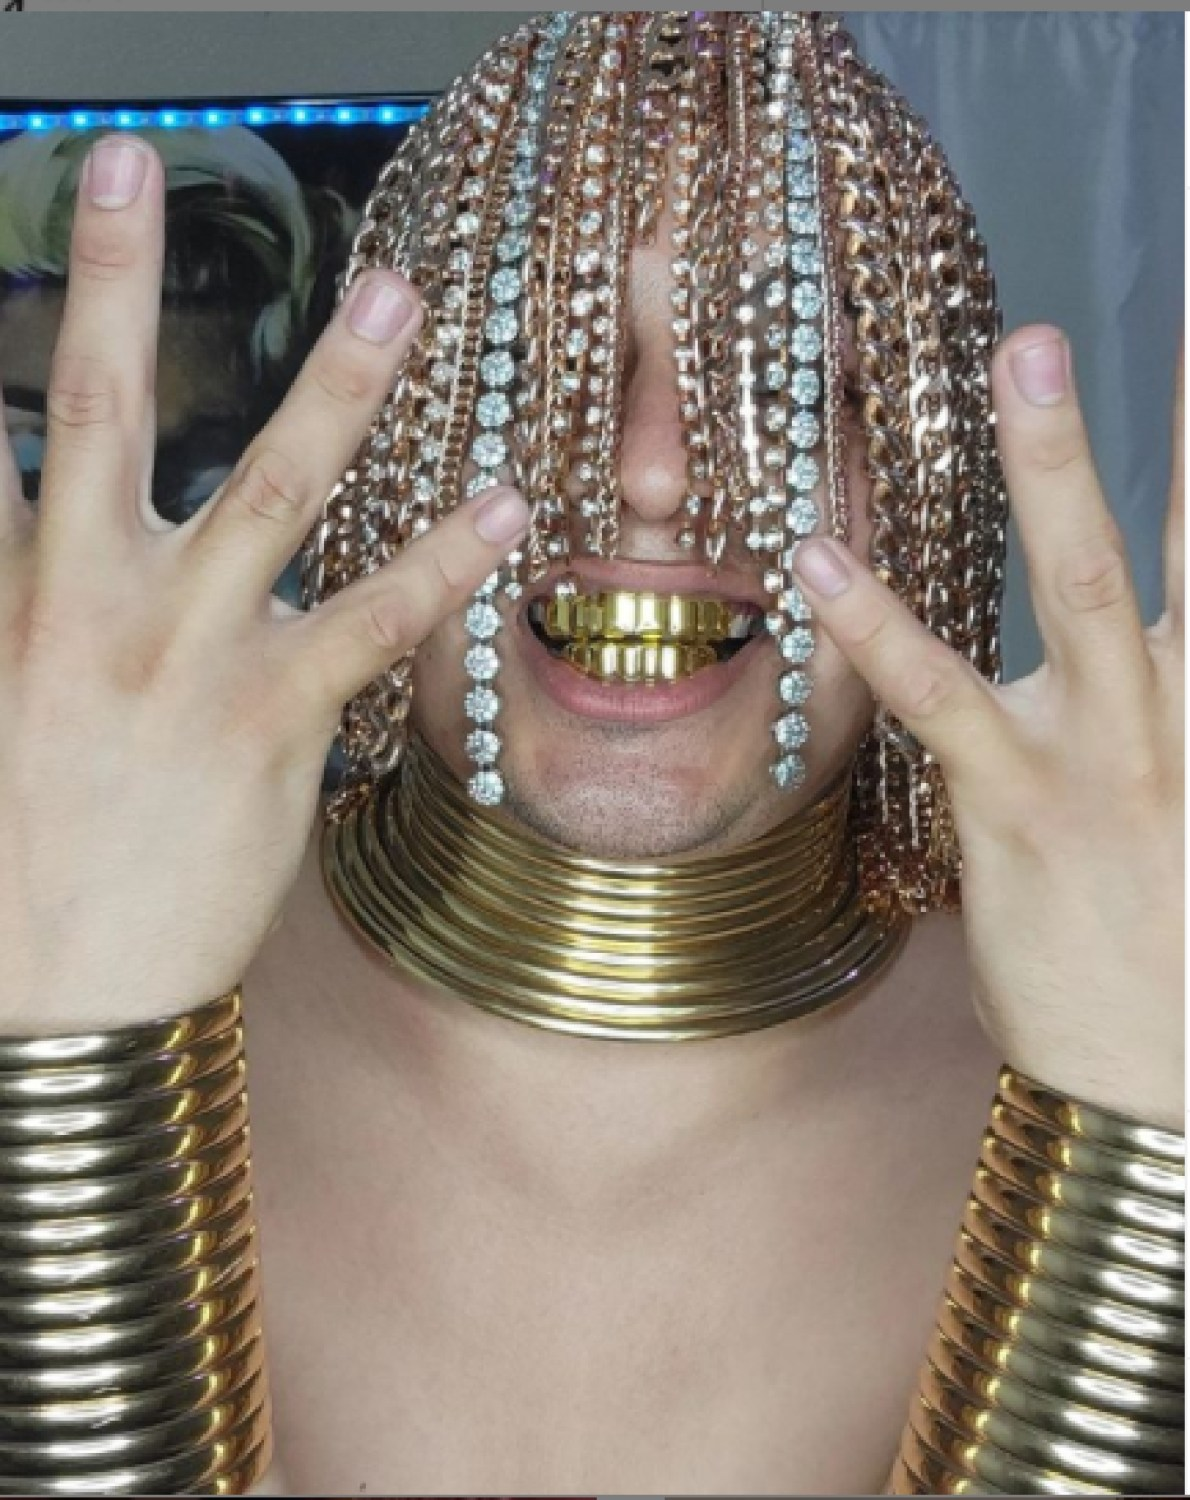 Rapper Got Gold Chains Surgically Implanted Into Head As 'hair'